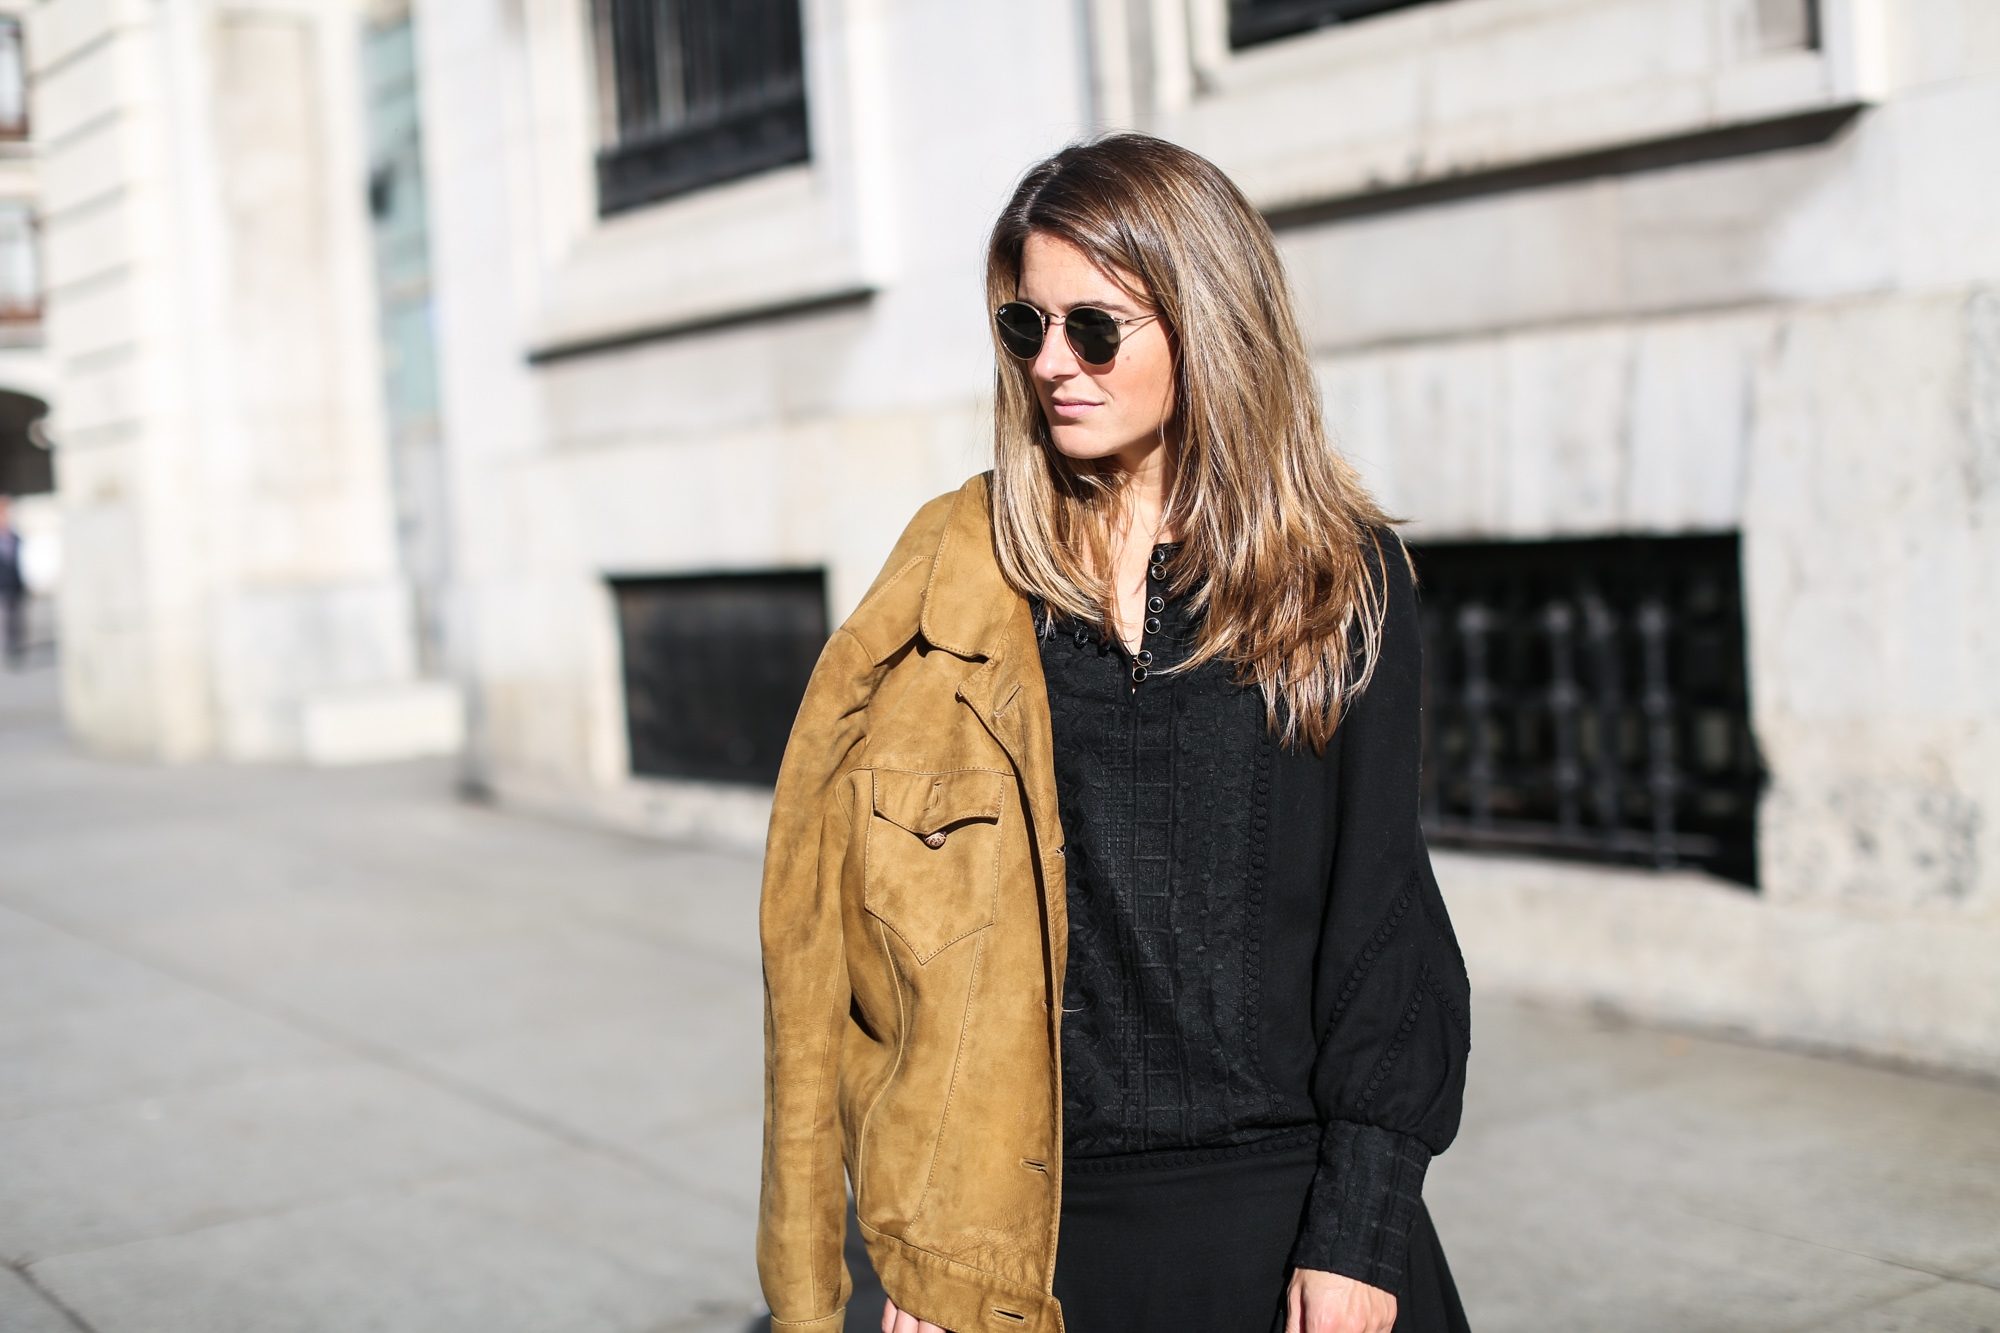 Clochet_streetstyle_suede_ankle_high_boots_boho_minidress-7